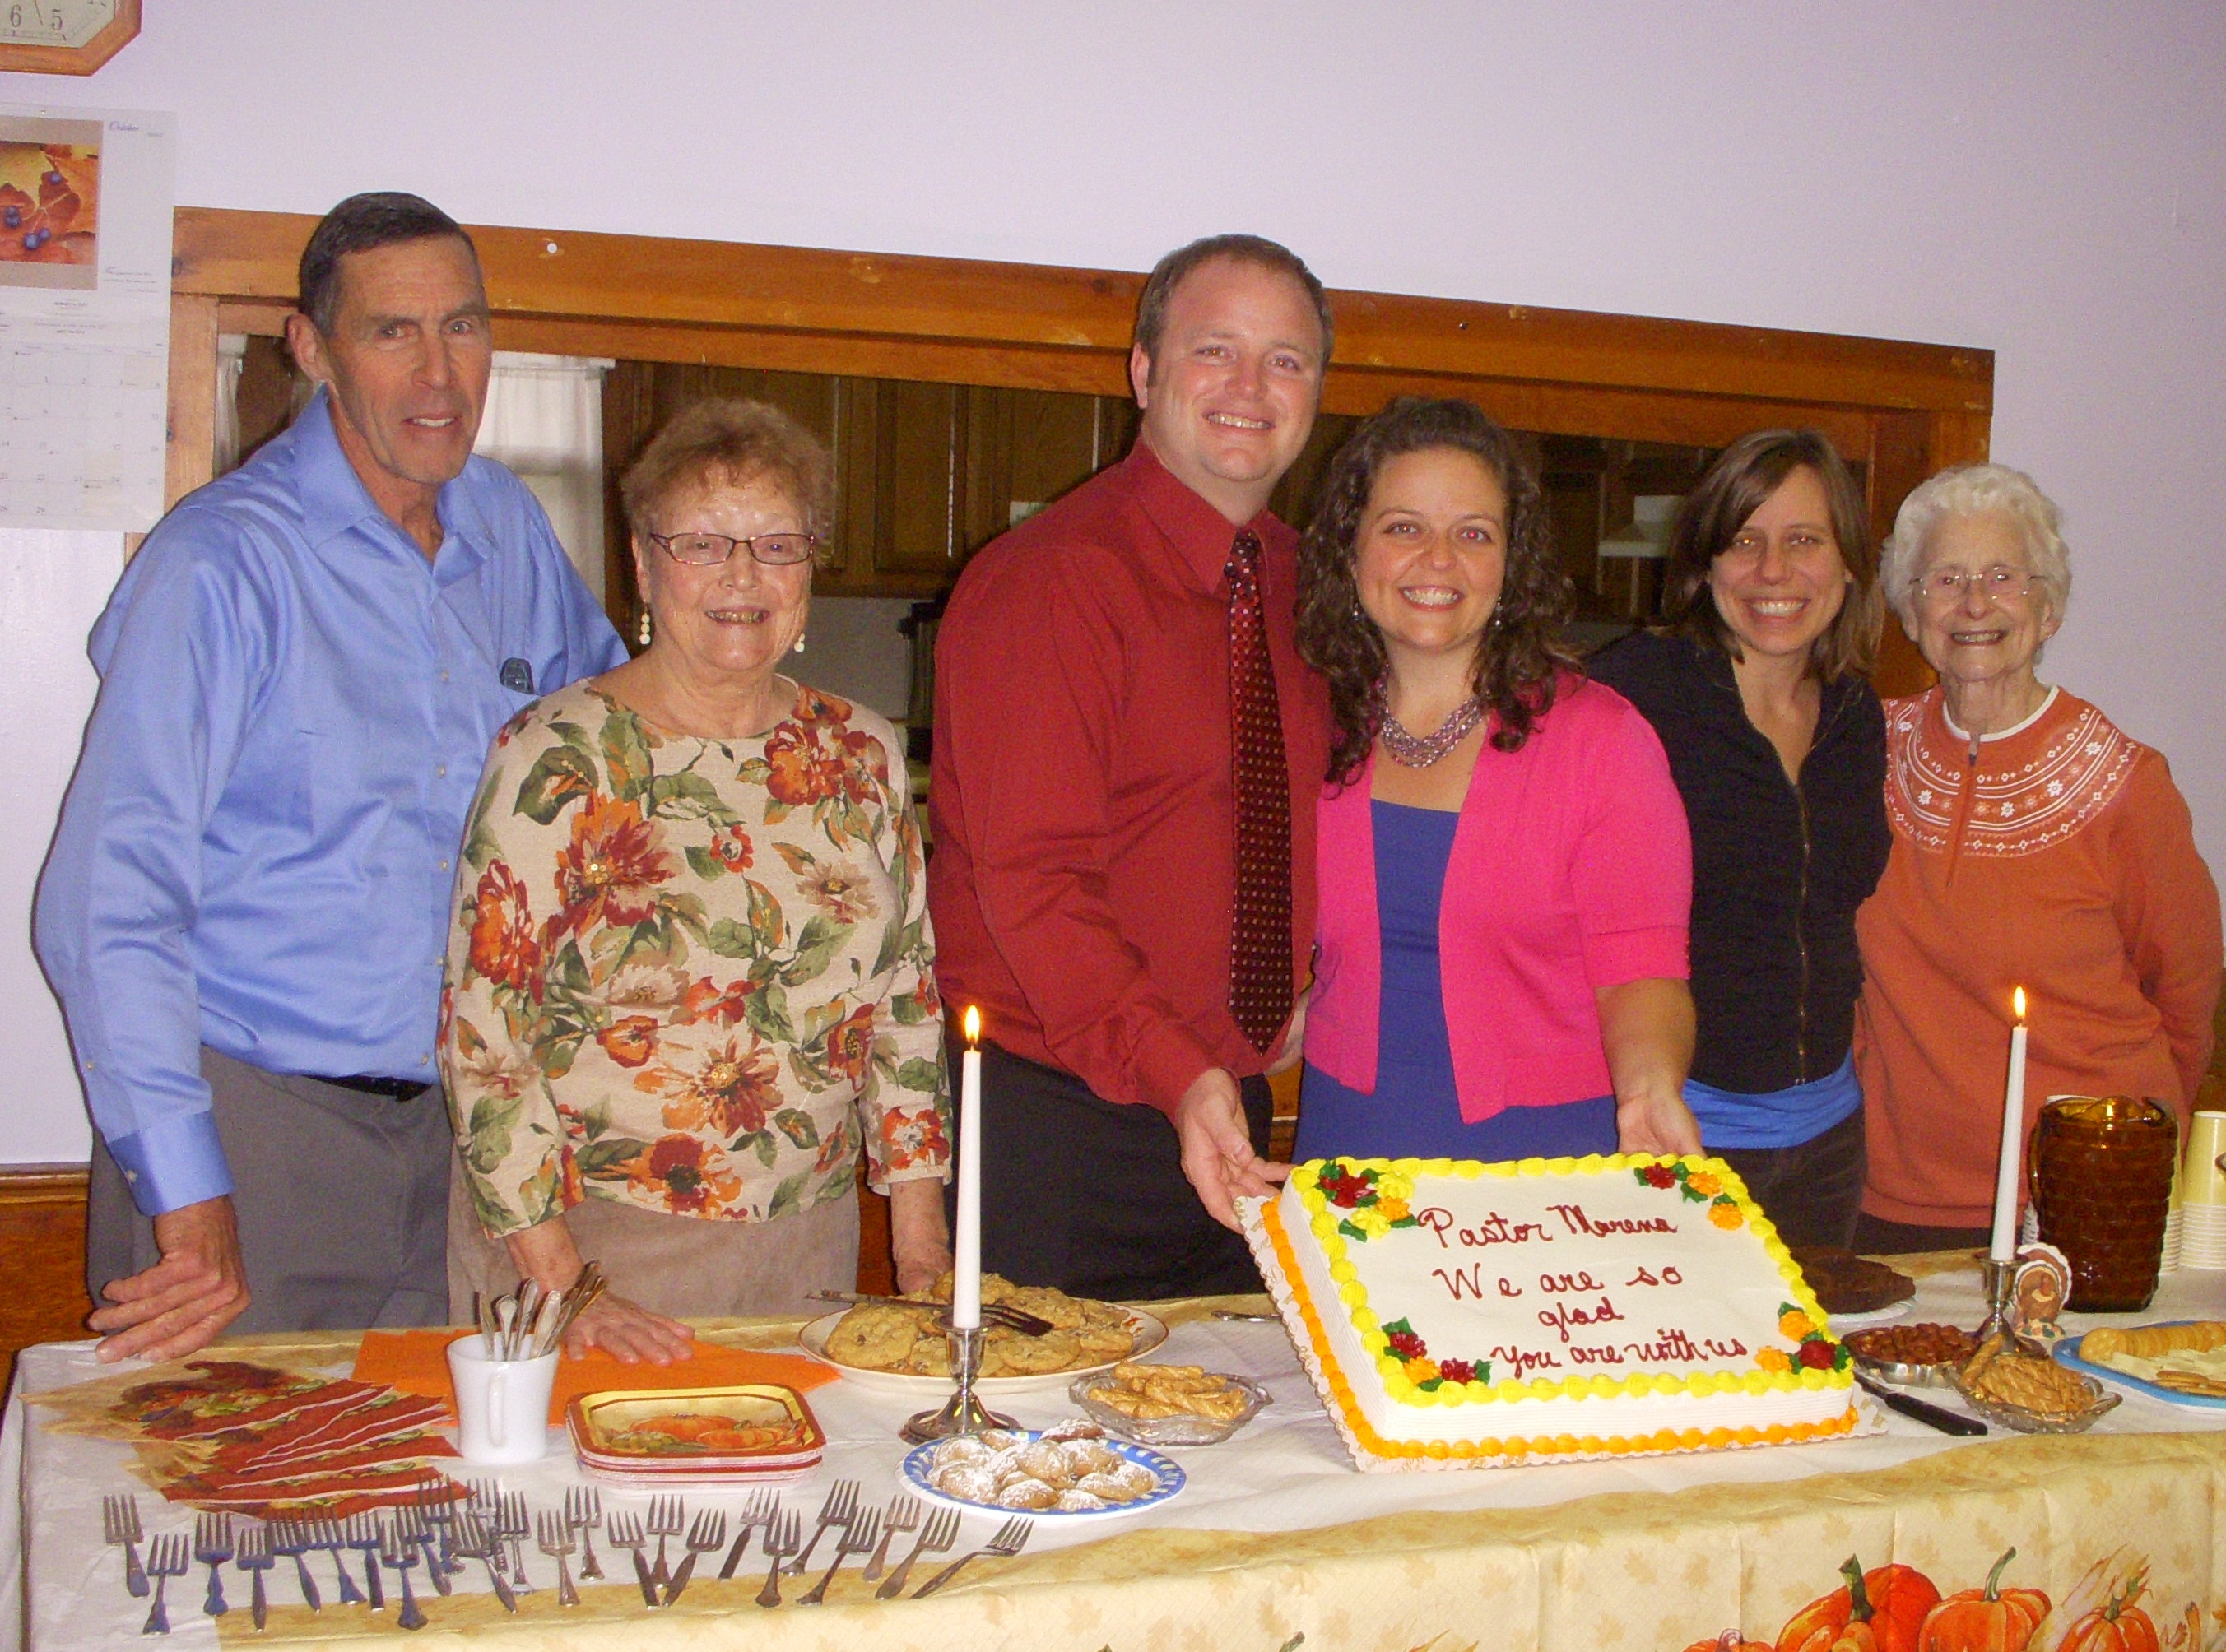 Andes Presbyterian Church Welcomes New Pastor - December 2014